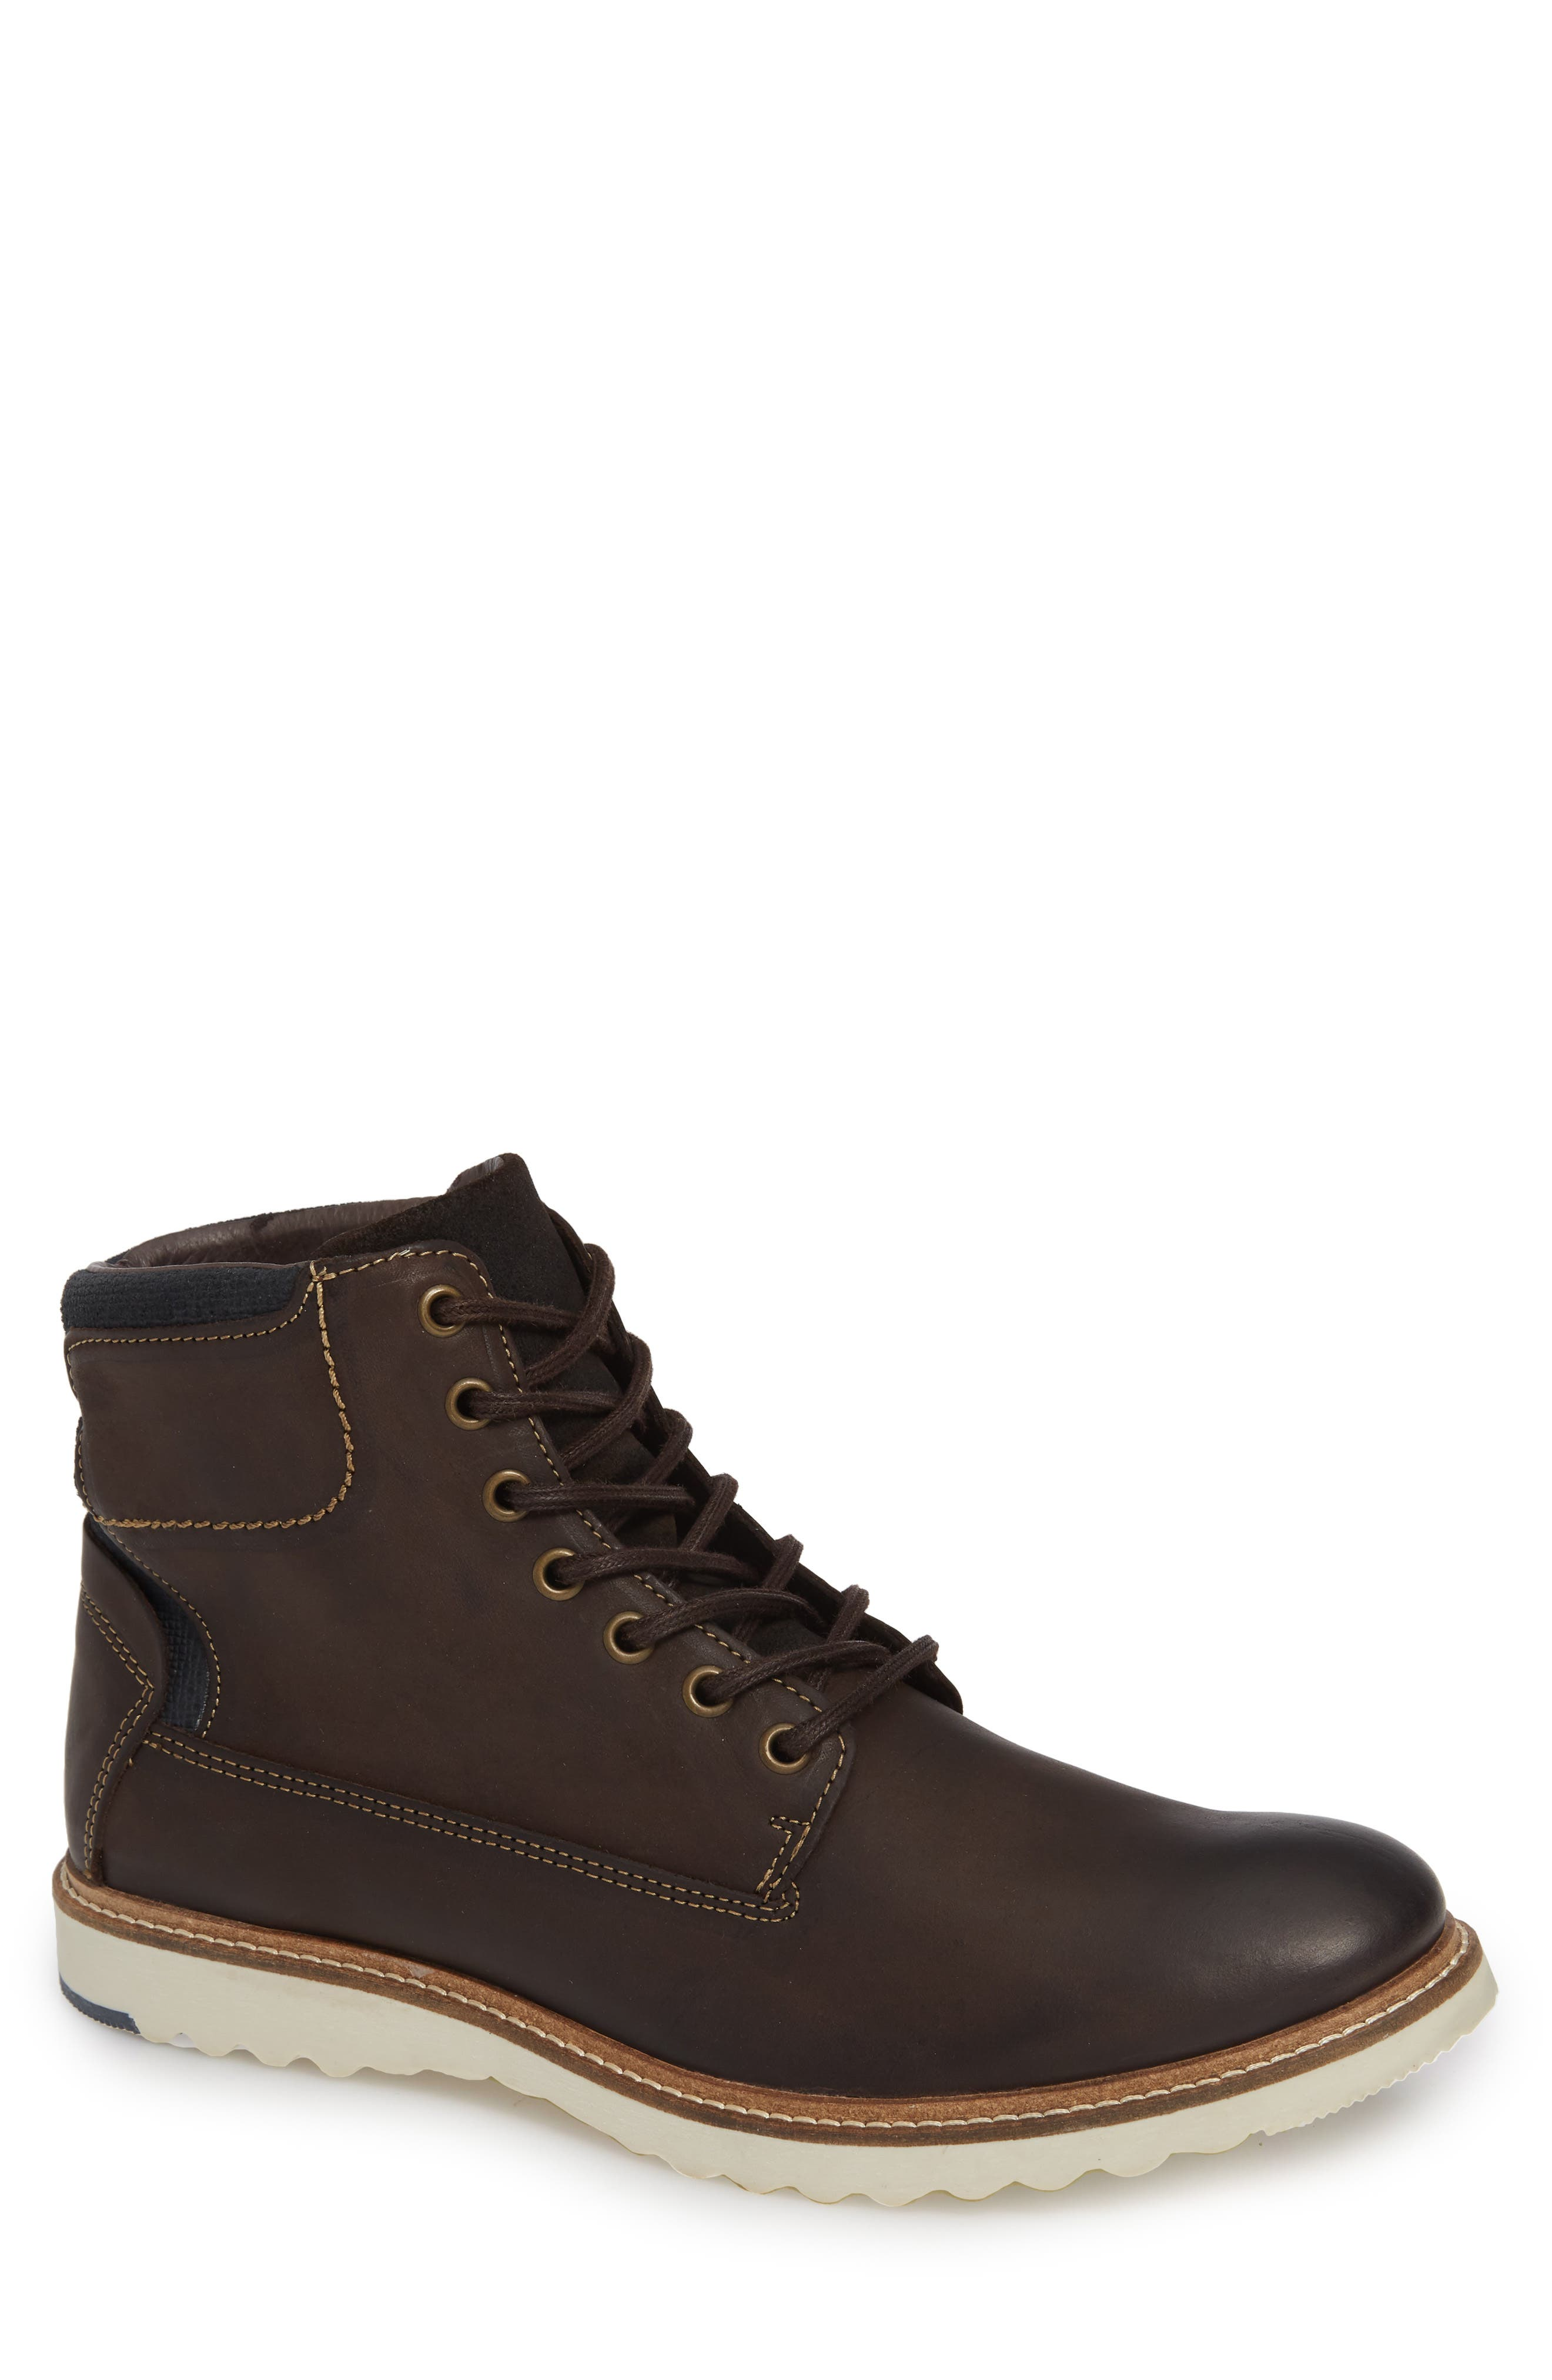 SUPPLY LAB Oscar Plain Toe Boot in Brown